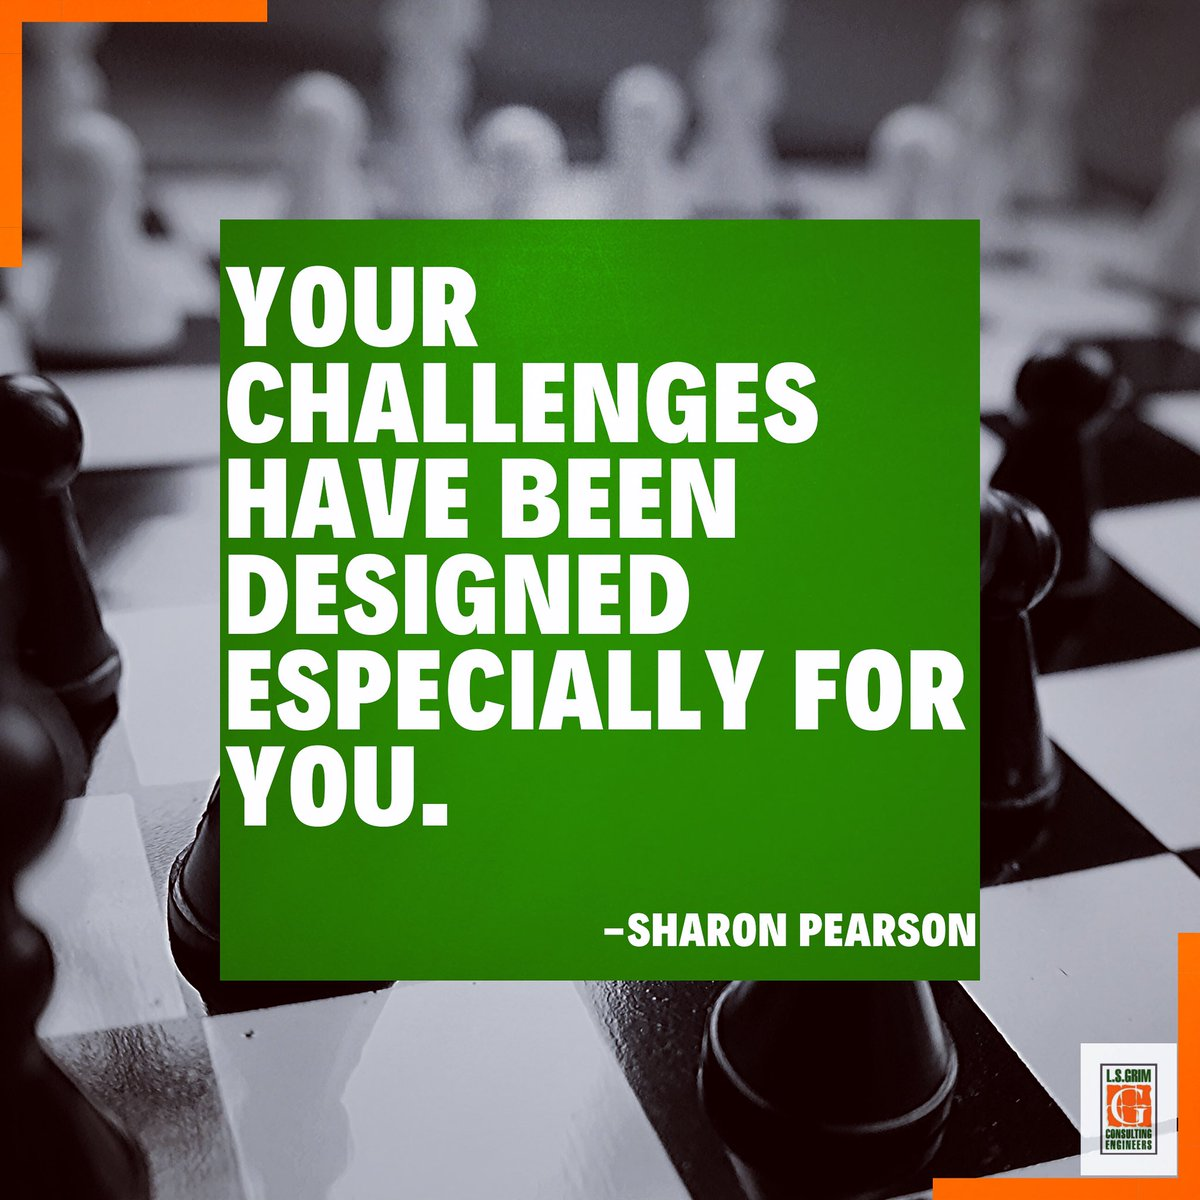 Nailed it Here's to the challenges in our life that pay dividends there forth. #hagerstownbusiness #mepengineer #dmvdevelopers #dmvcontractor #howhigh #engineeringlovers #buildingdesign #plumbproud #electricallife #hvaclove #fireprotectionsystems #designbuildrepeat #mdbusinesspic.twitter.com/l2EWEgw25R